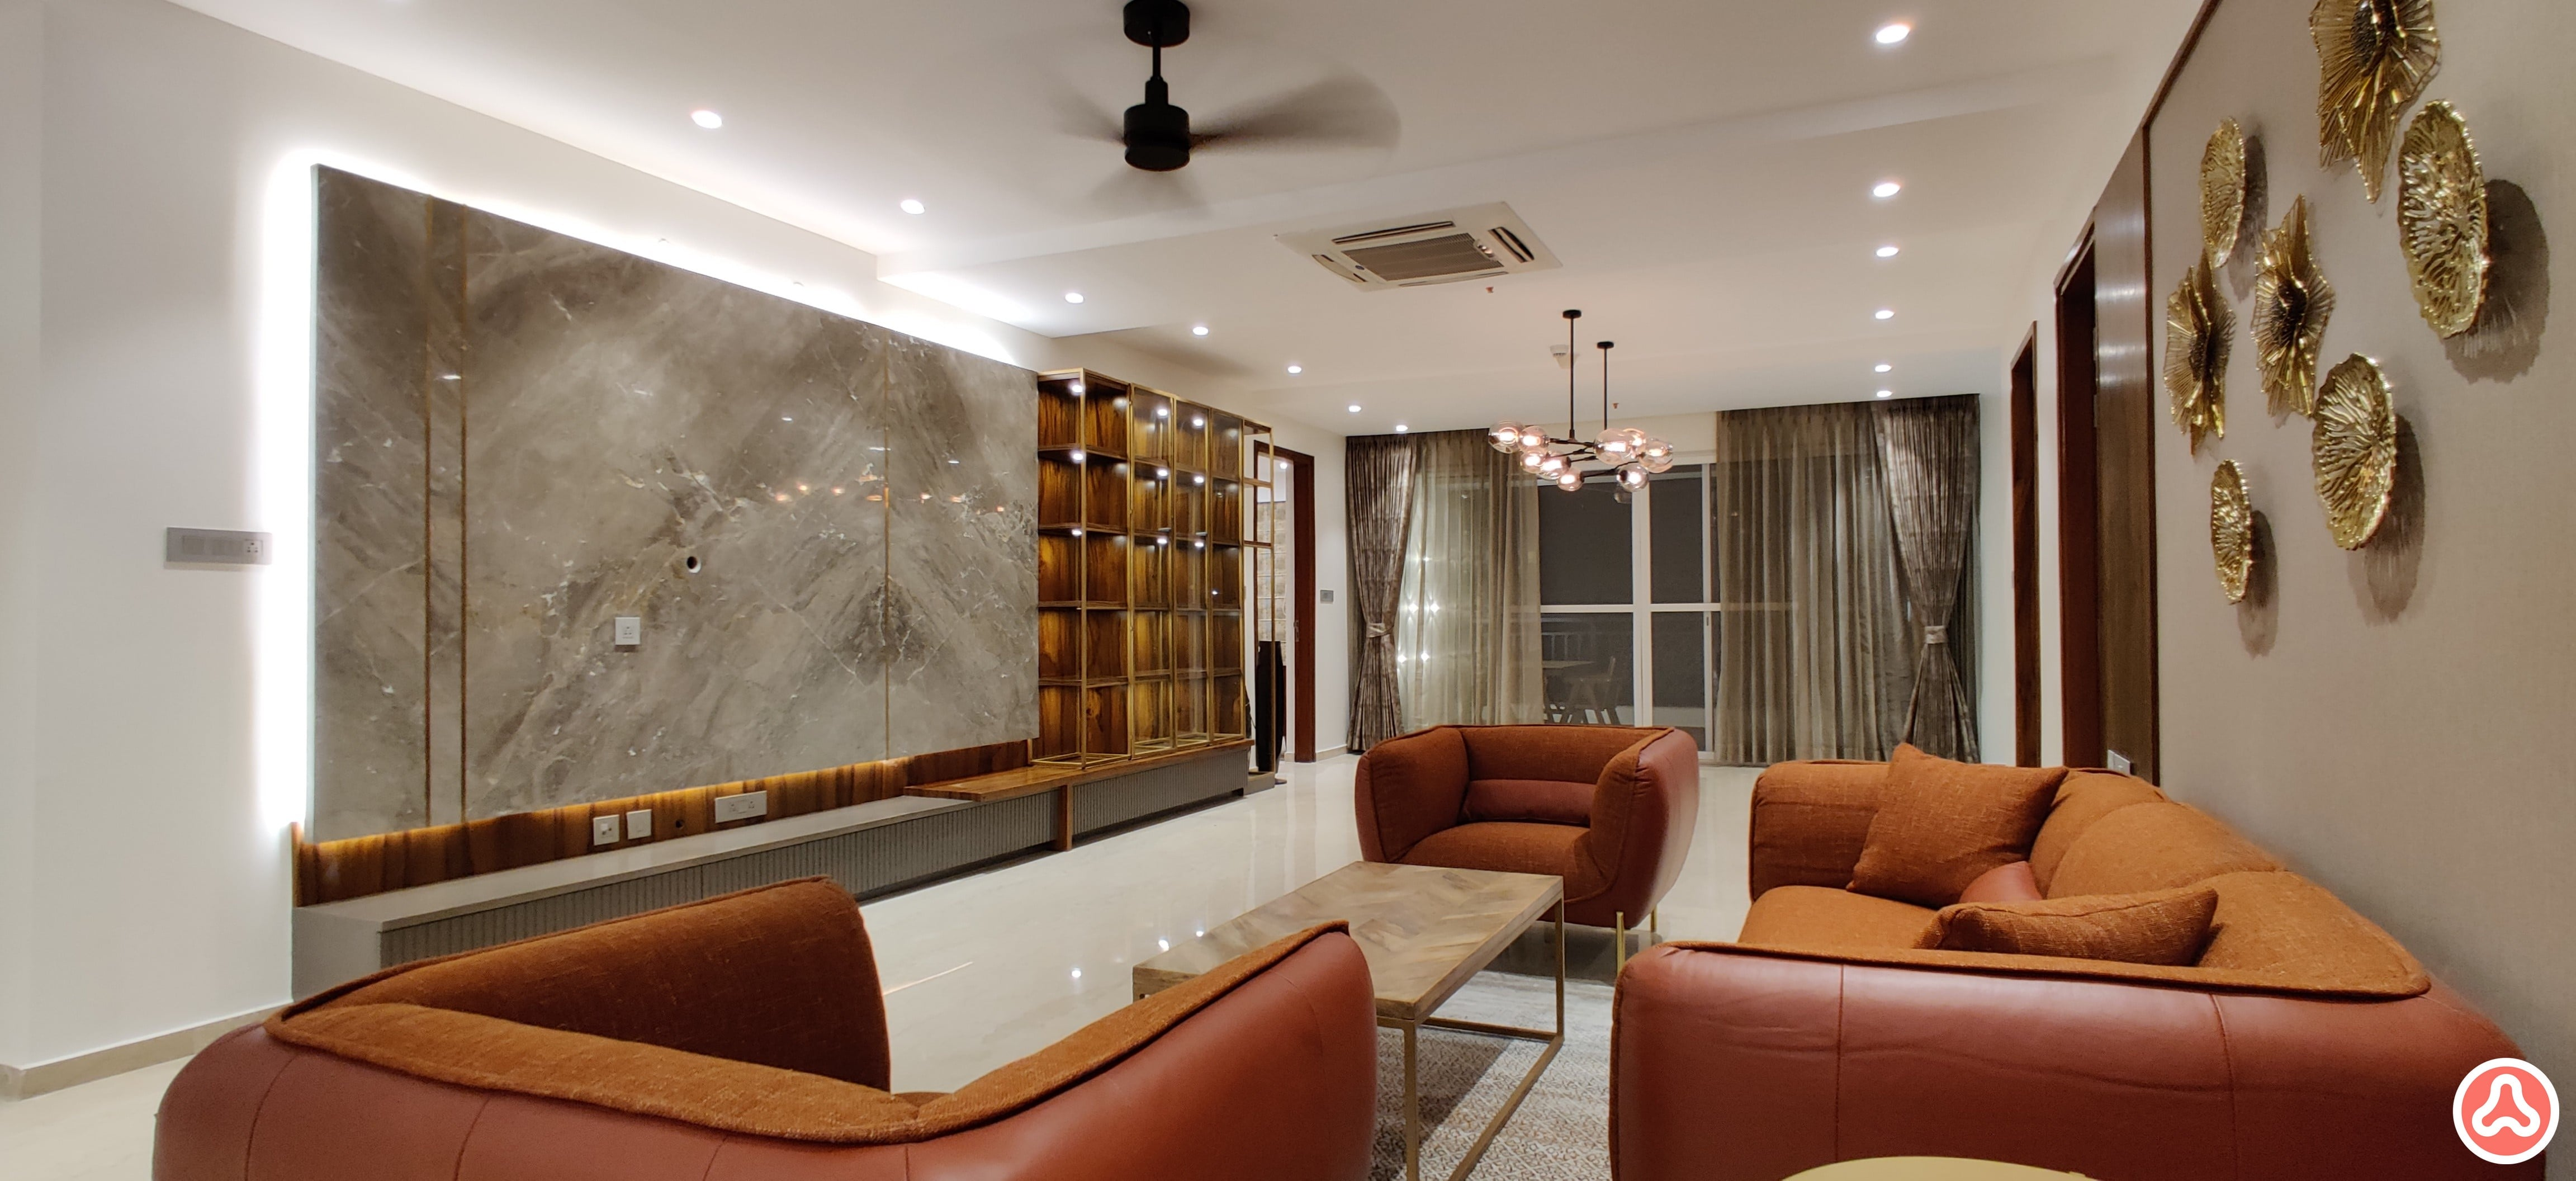 Leather sofa in brick red, Italian marble wall